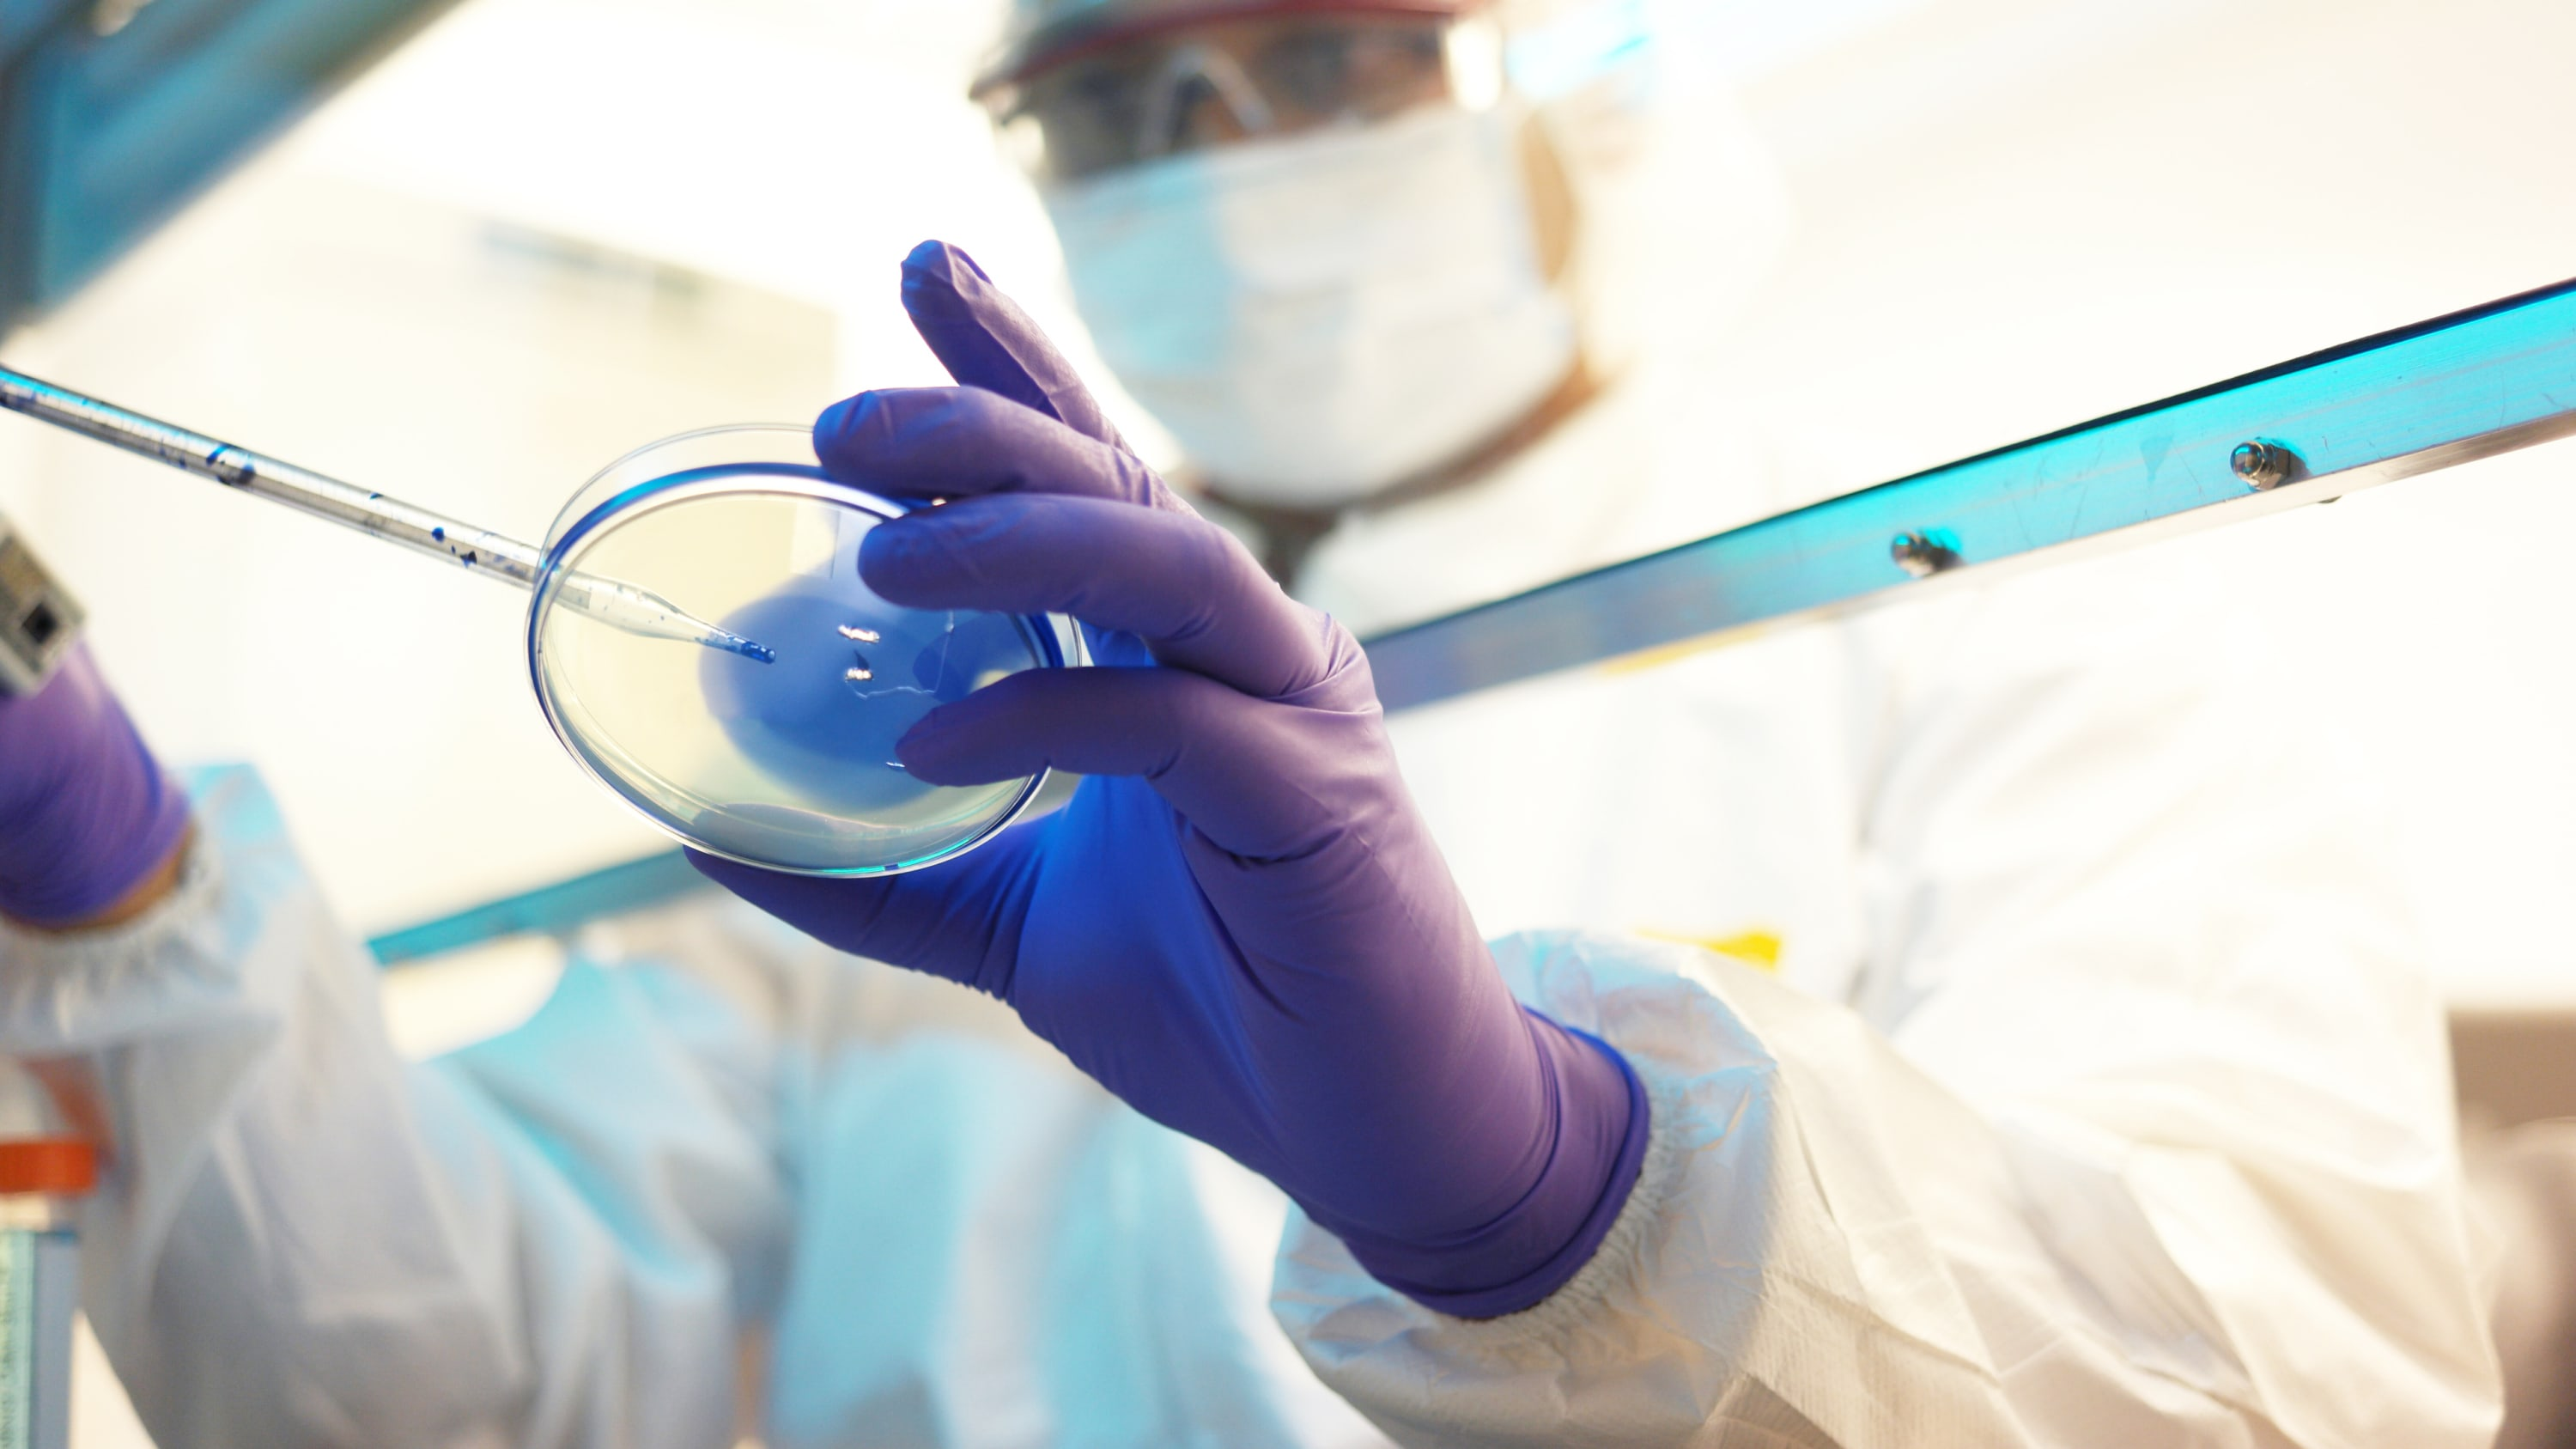 A researcher works with a Petri dish that contains MRSA, a drug-resistant microbe.